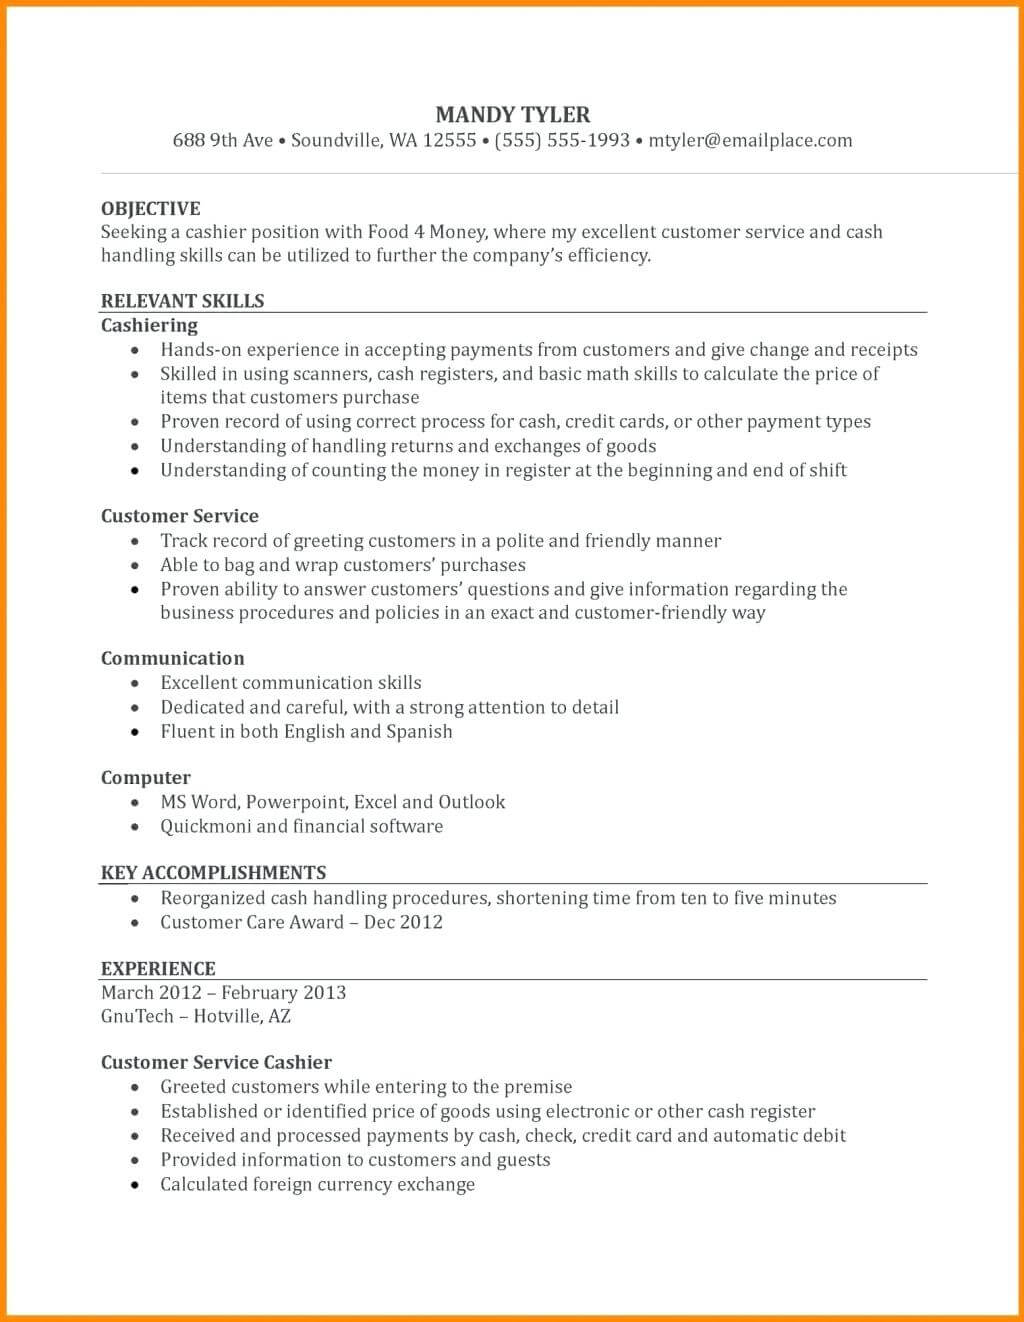 Brilliant Ideas For Corporate Credit Card Policy Template Of Throughout Company Credit Card Policy Template